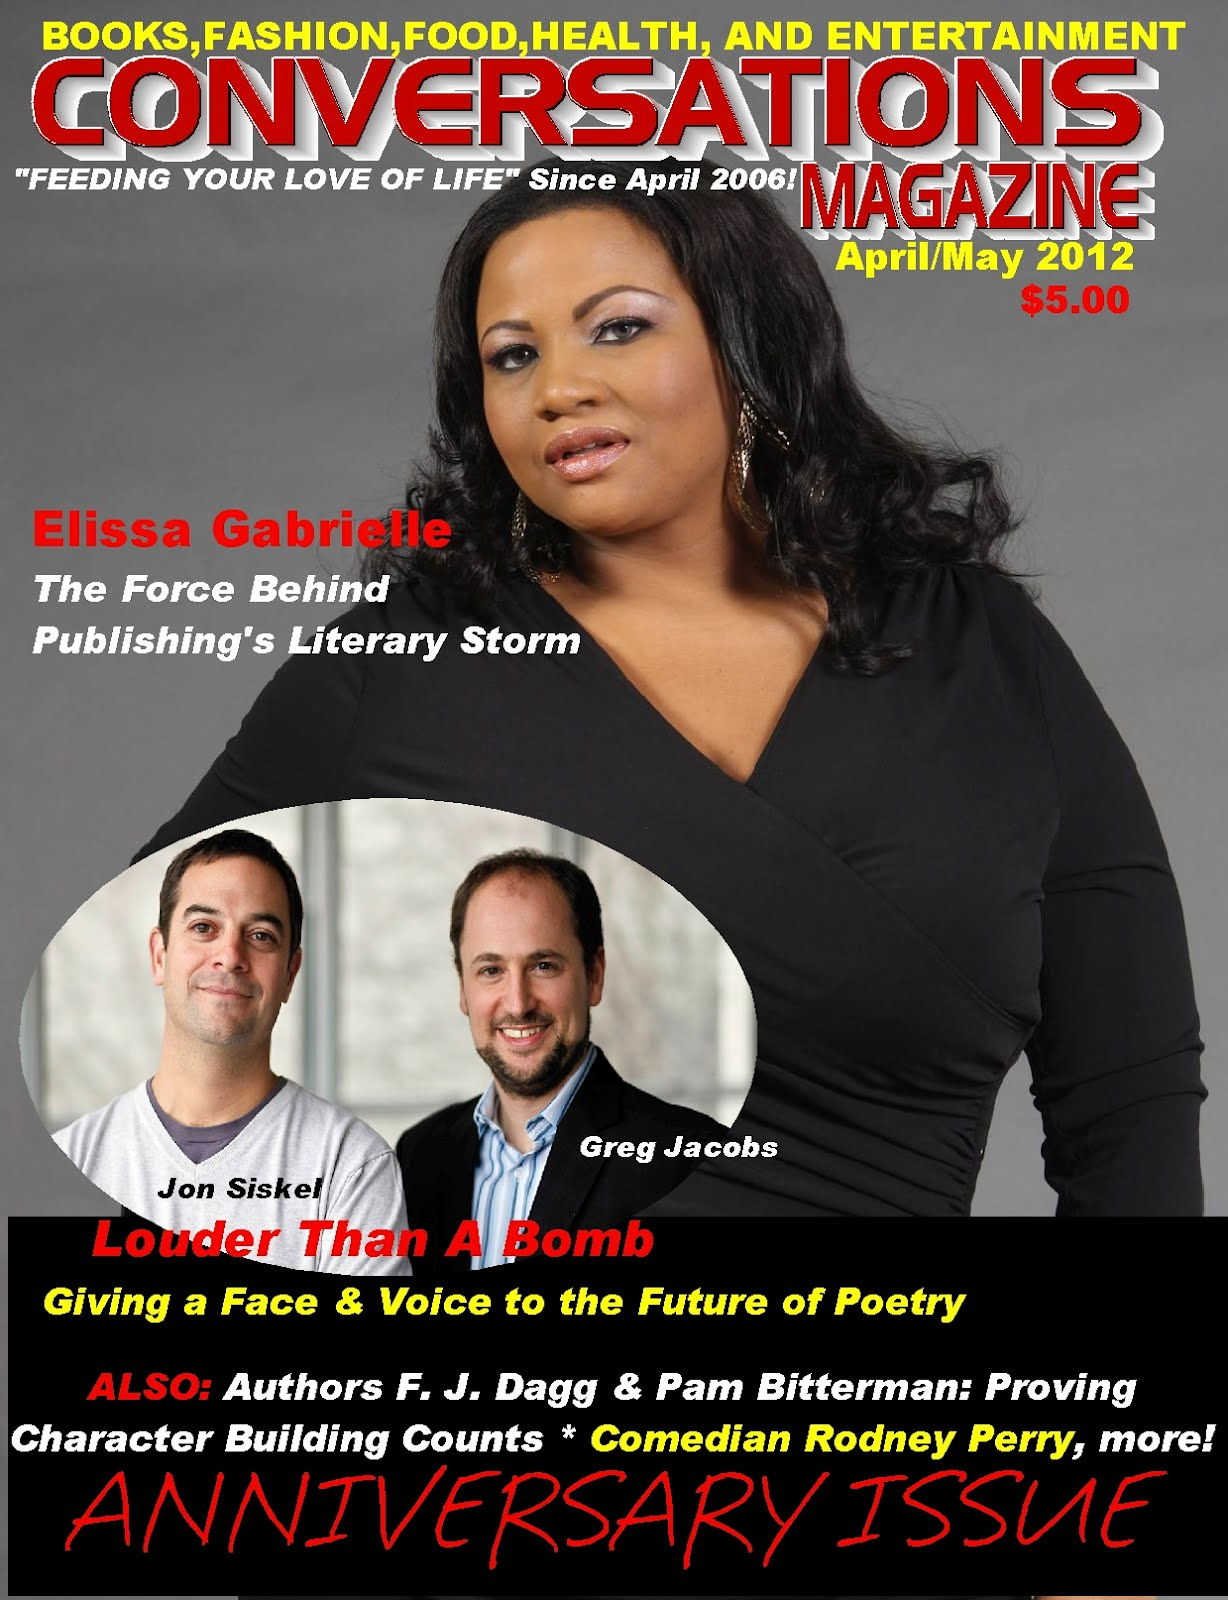 Order The Conversations Magazine&#39;s April/May 2012 Anniversary Issue NOW!